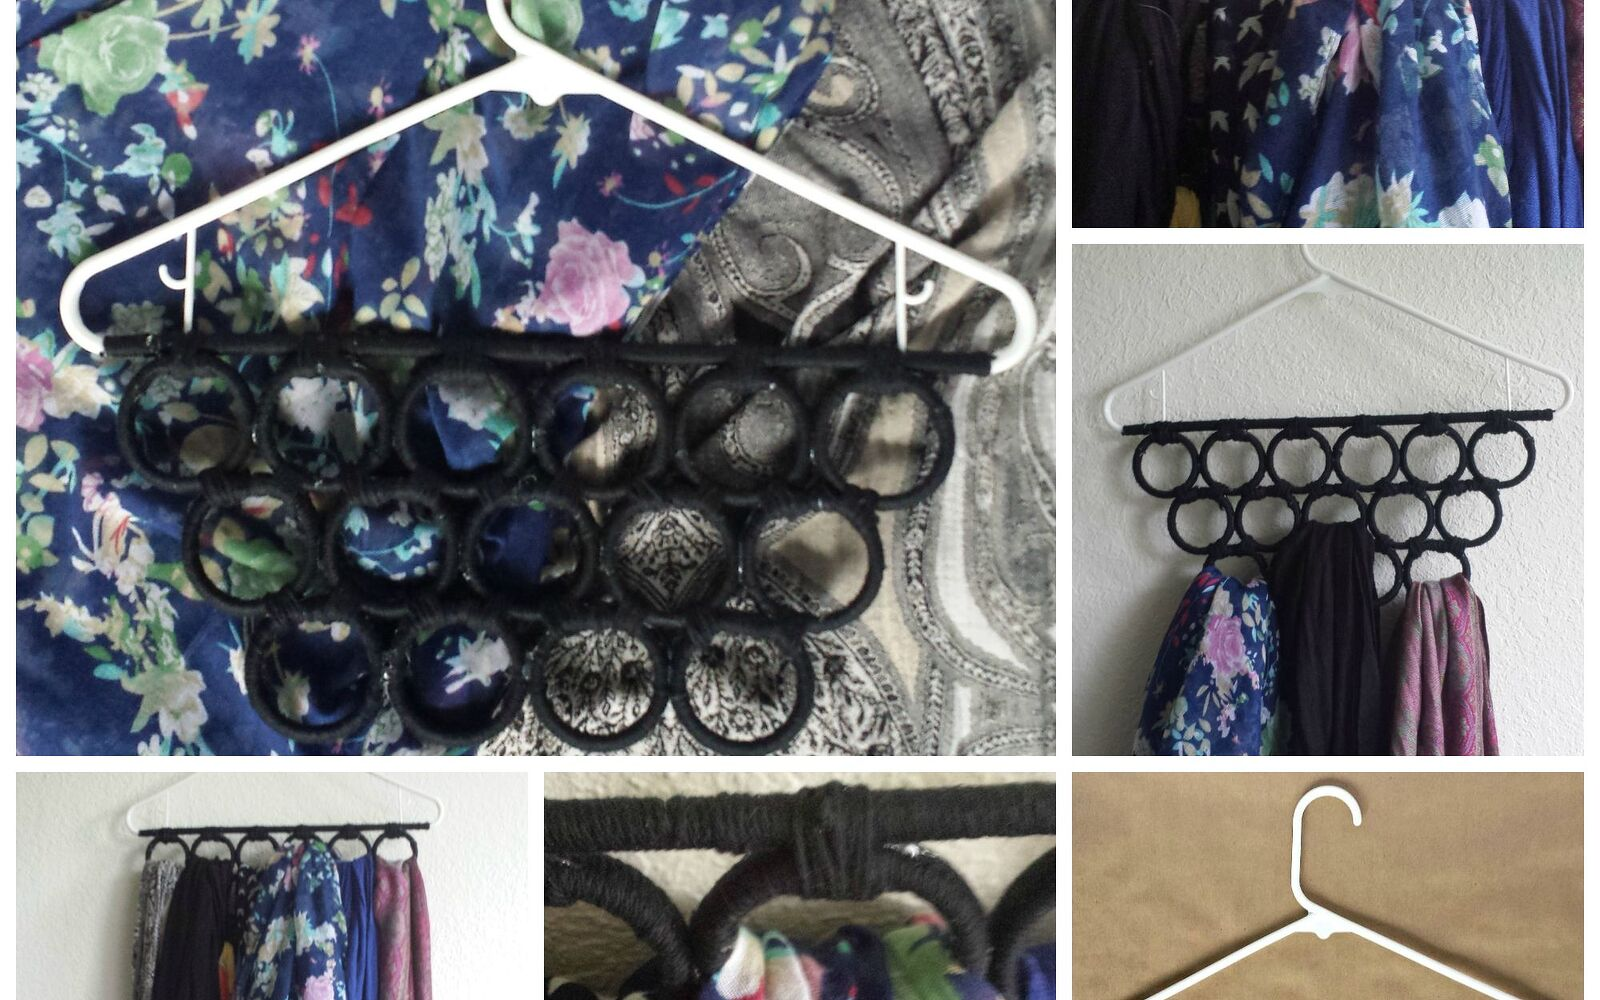 s post, Use A Hanger For Your Scarves With Rings